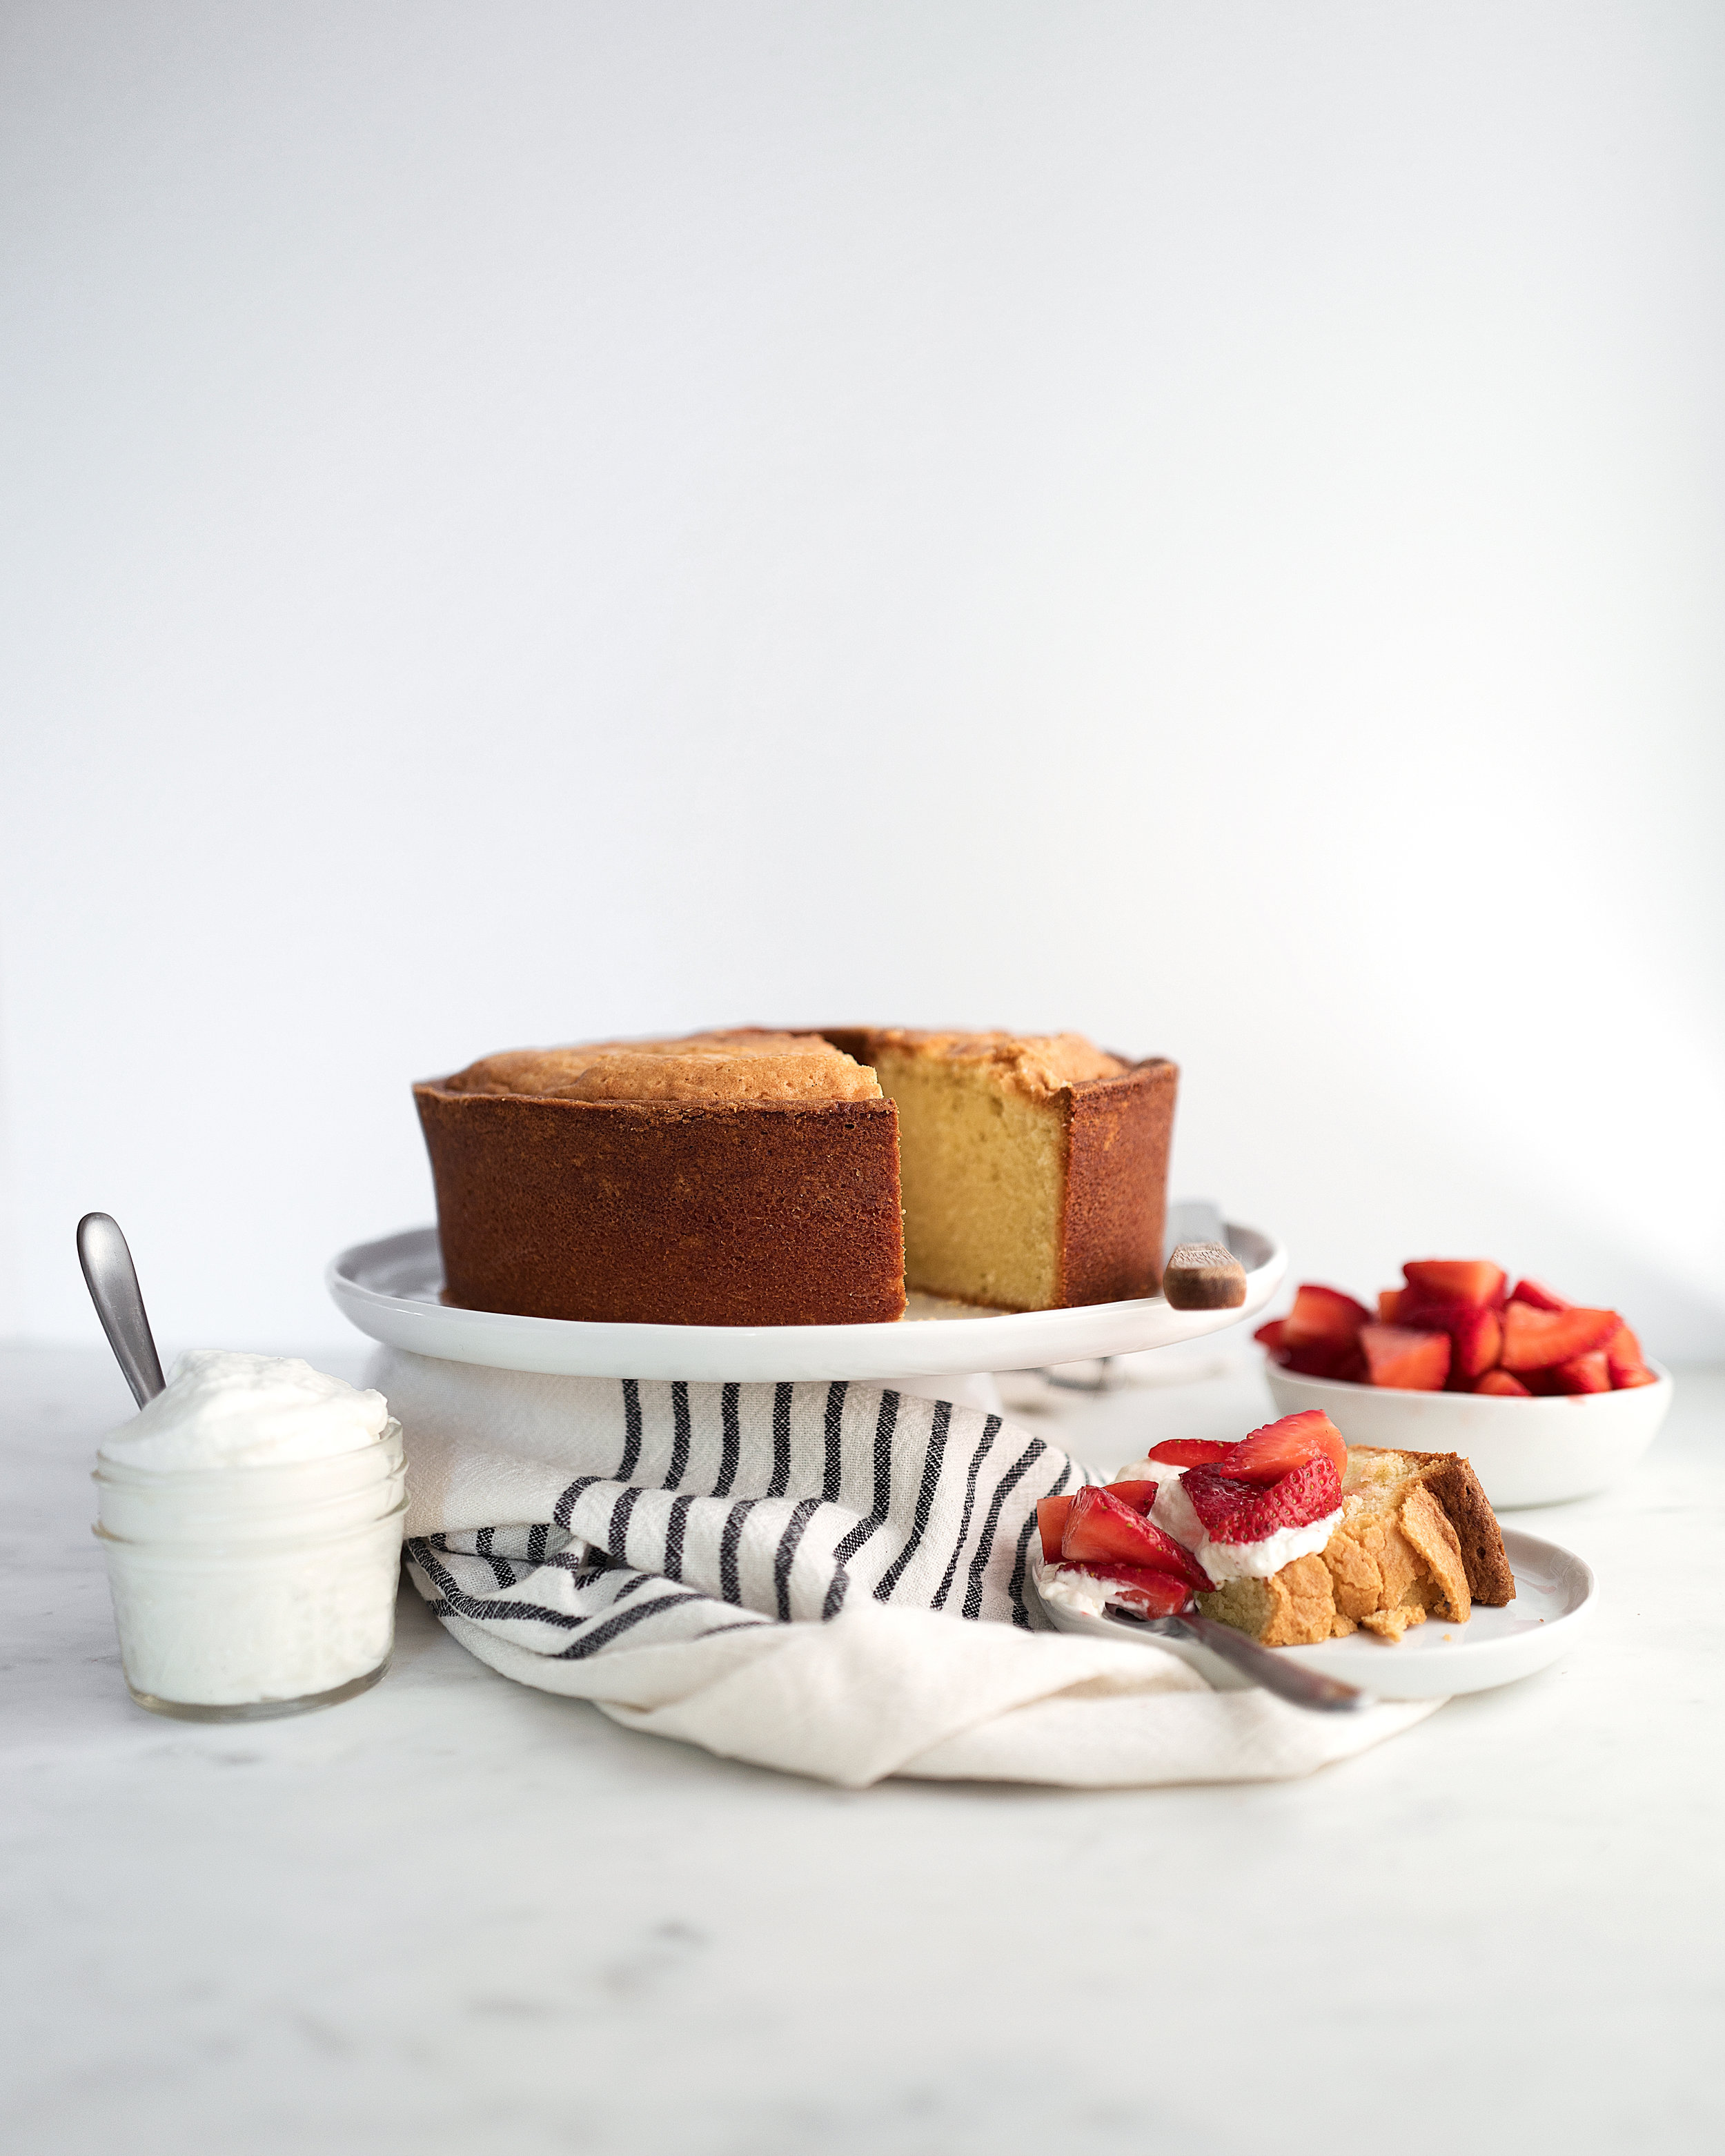 leah chase butter cake FINAL.jpg